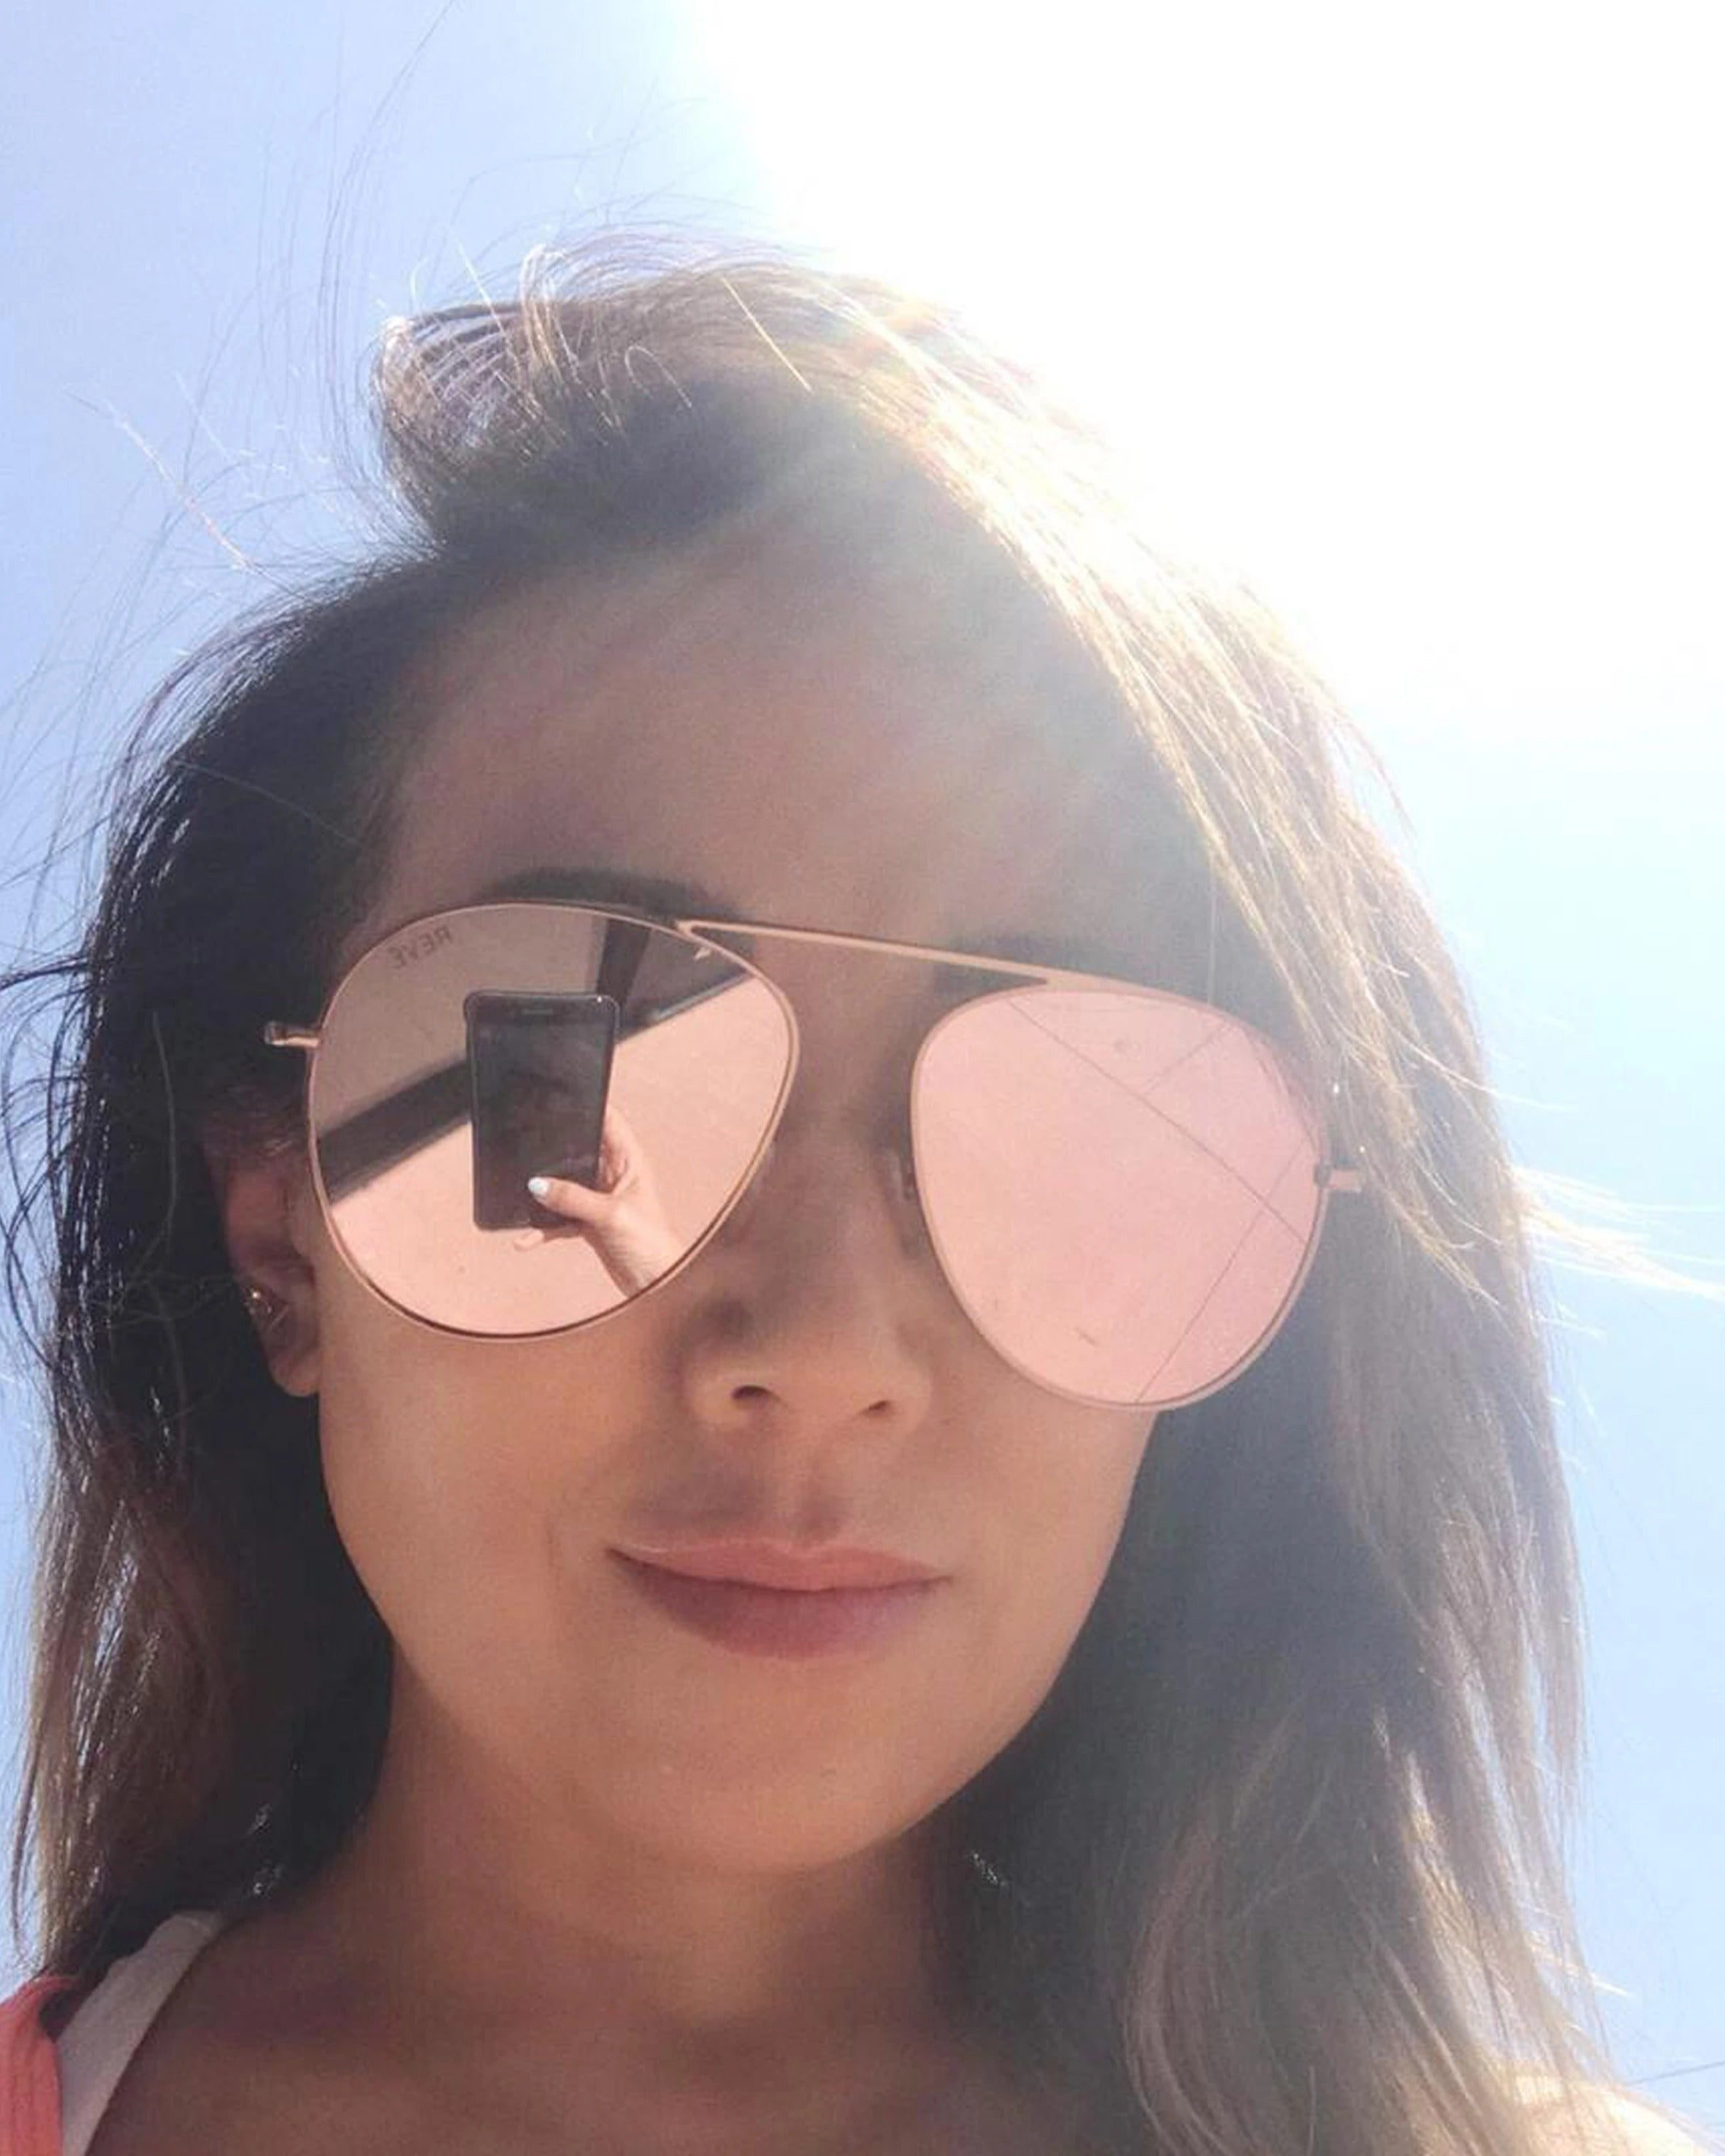 Tina Craig 陳尚婷 wears REVE by RENE glimpse sunglasses in rosegold